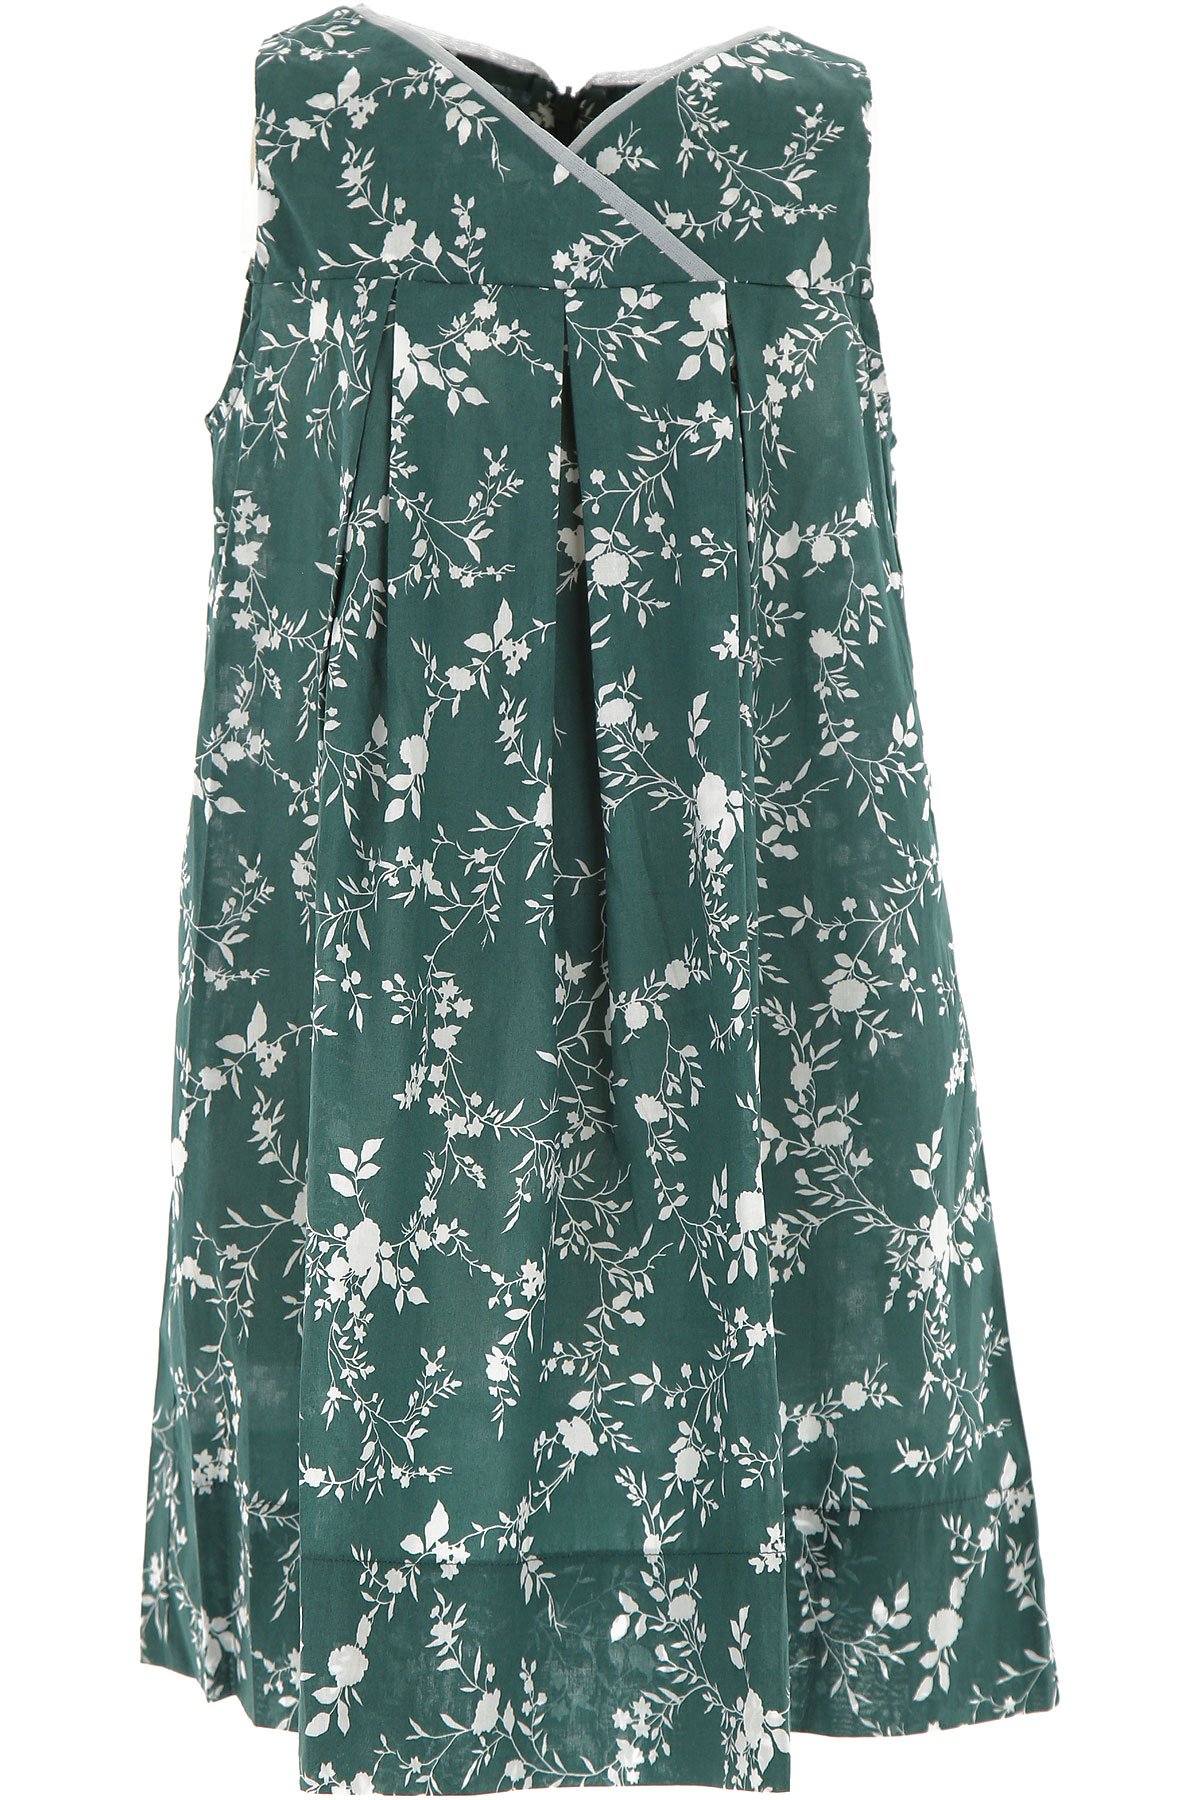 La Stupenderia Girls Dress On Sale In Outlet, Green, Cotton, 2019, 2Y 6Y